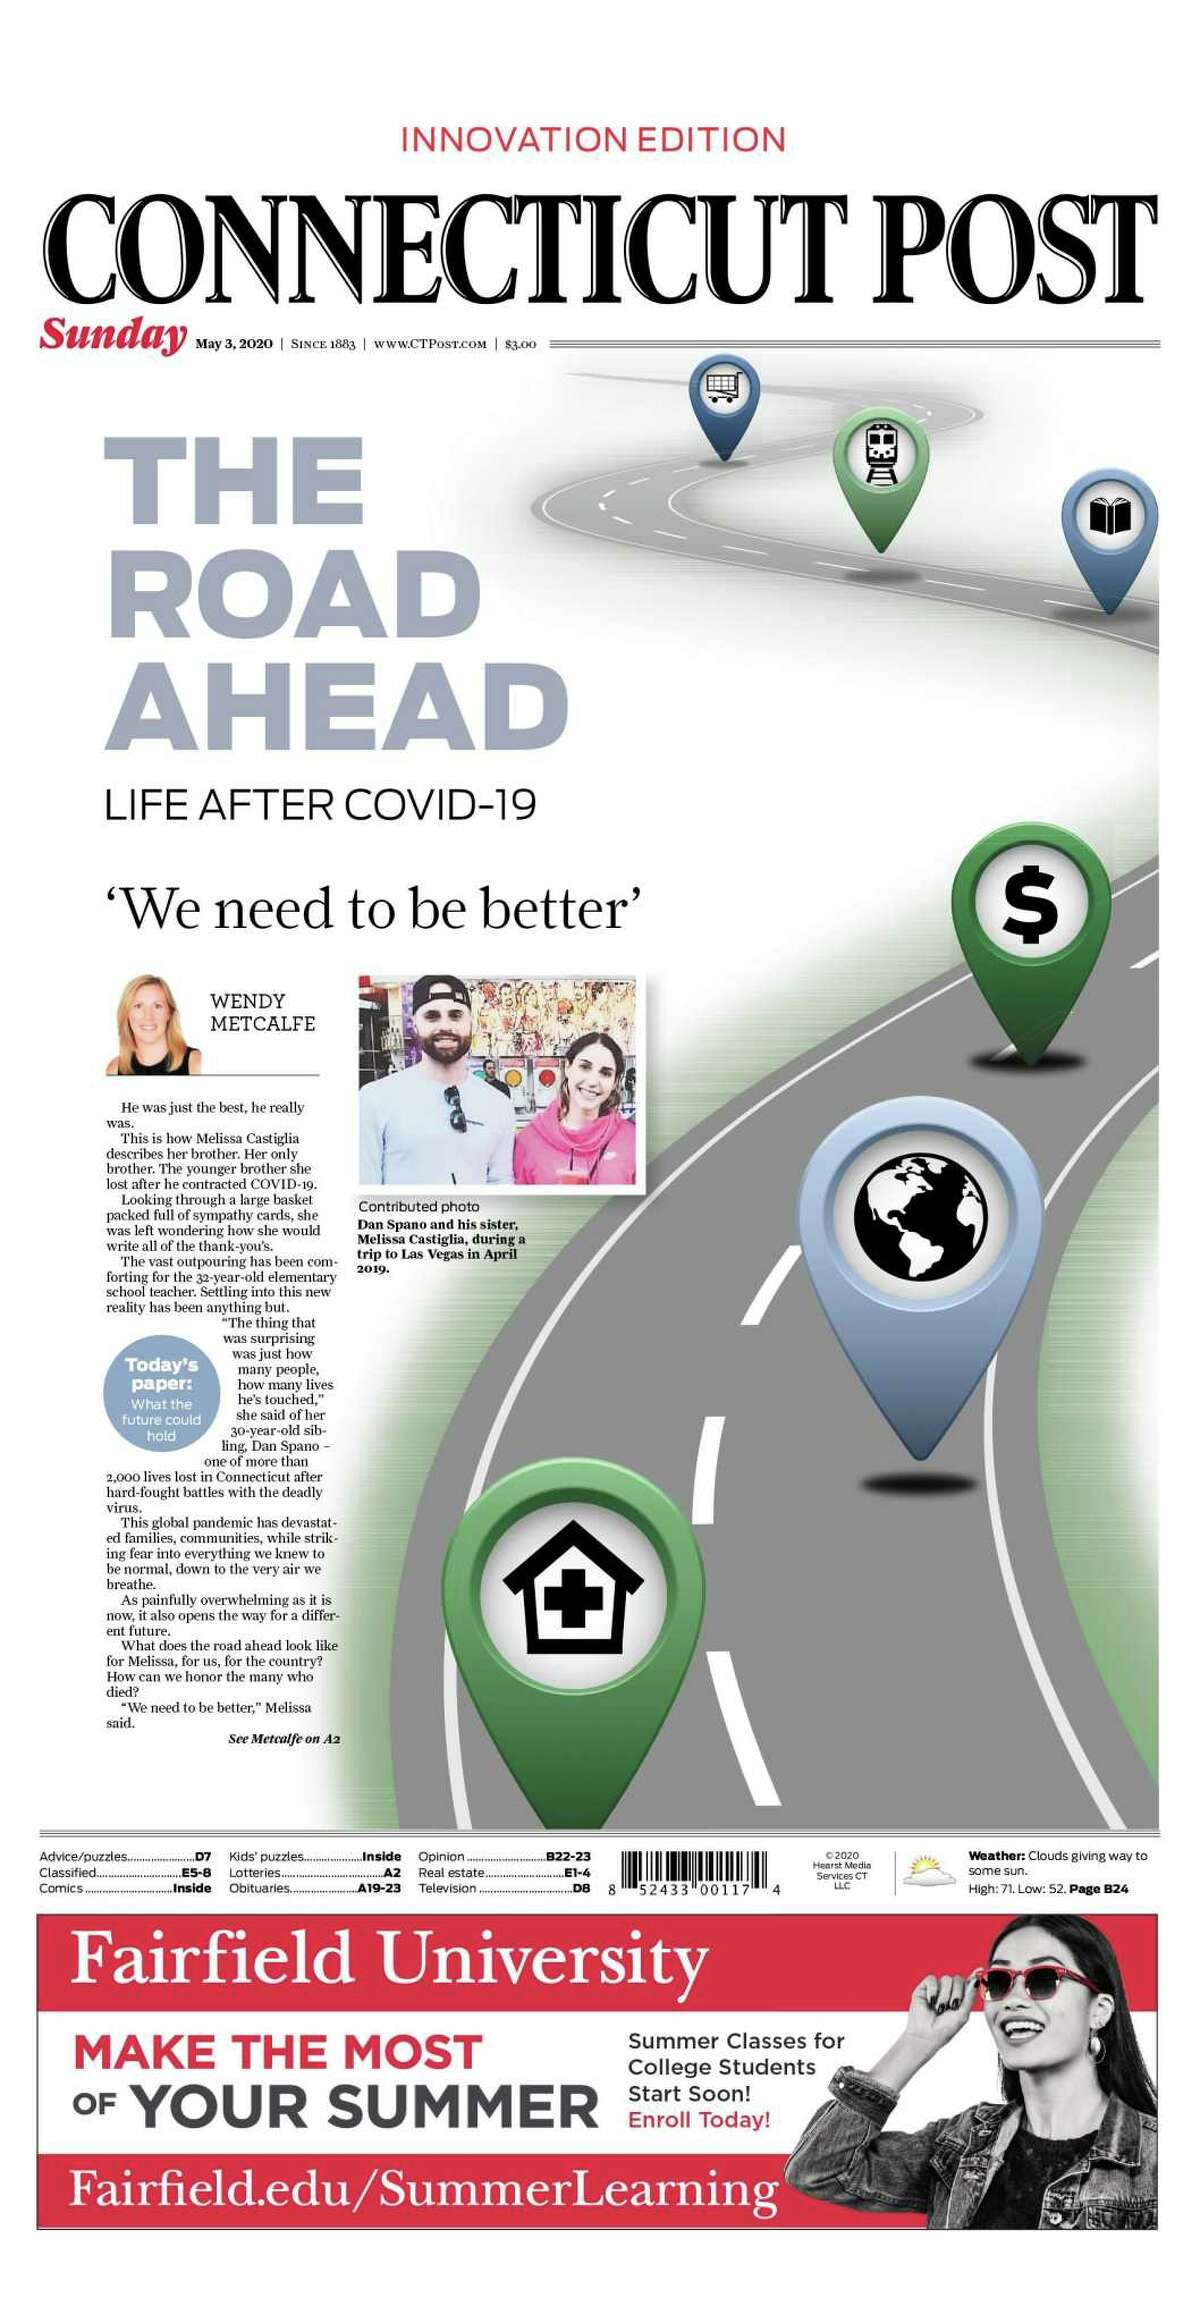 The Road Ahead, a full edition of all of HCMG daily publications that took an in-depth look at what Connecticut residents might face next in the pandemic, was awarded first place in a new COVID series category.